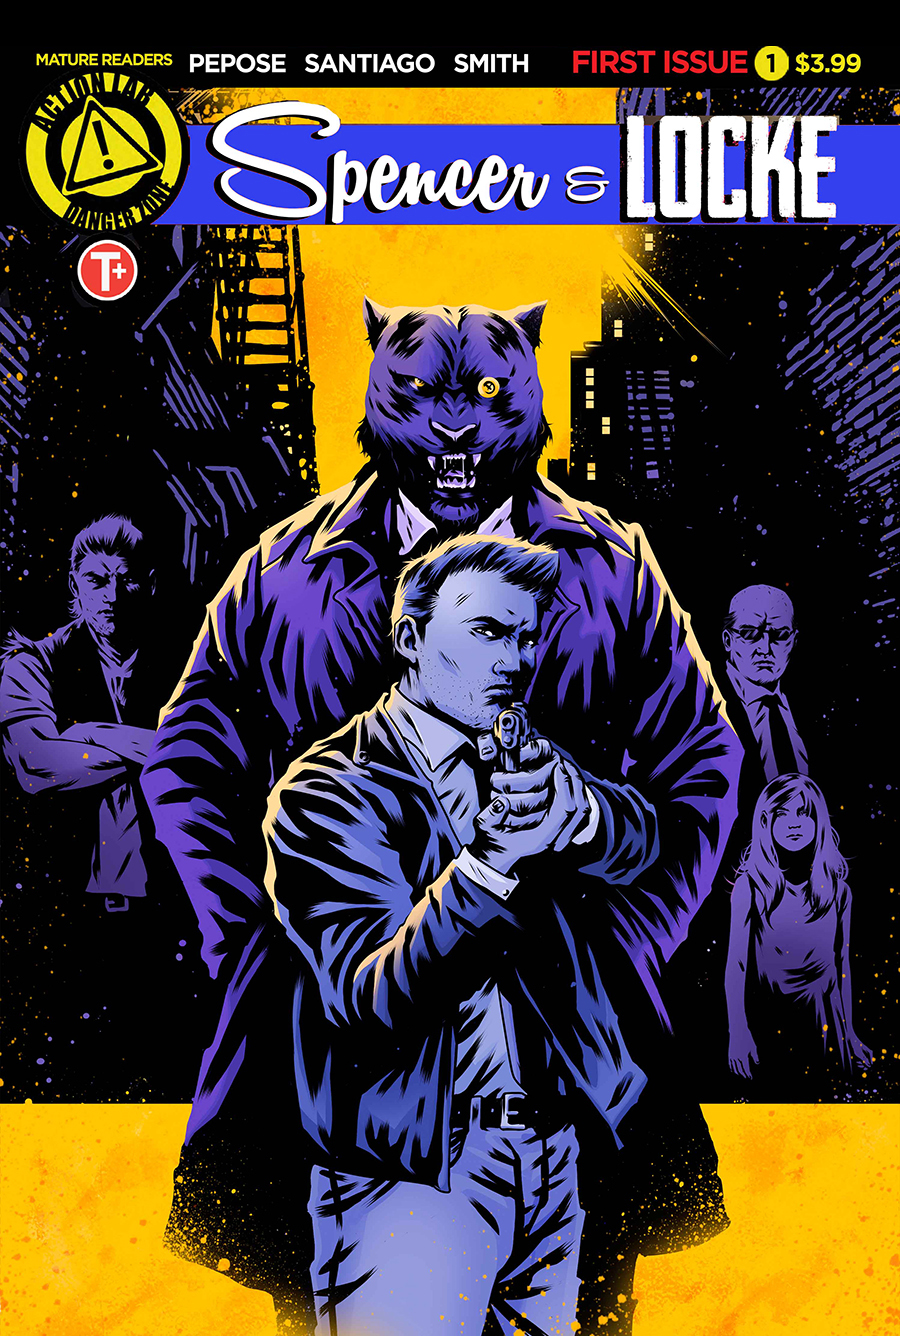 Spencer & Locke Only Succeeds at Revealing the Shallowness of Nostalgianoir